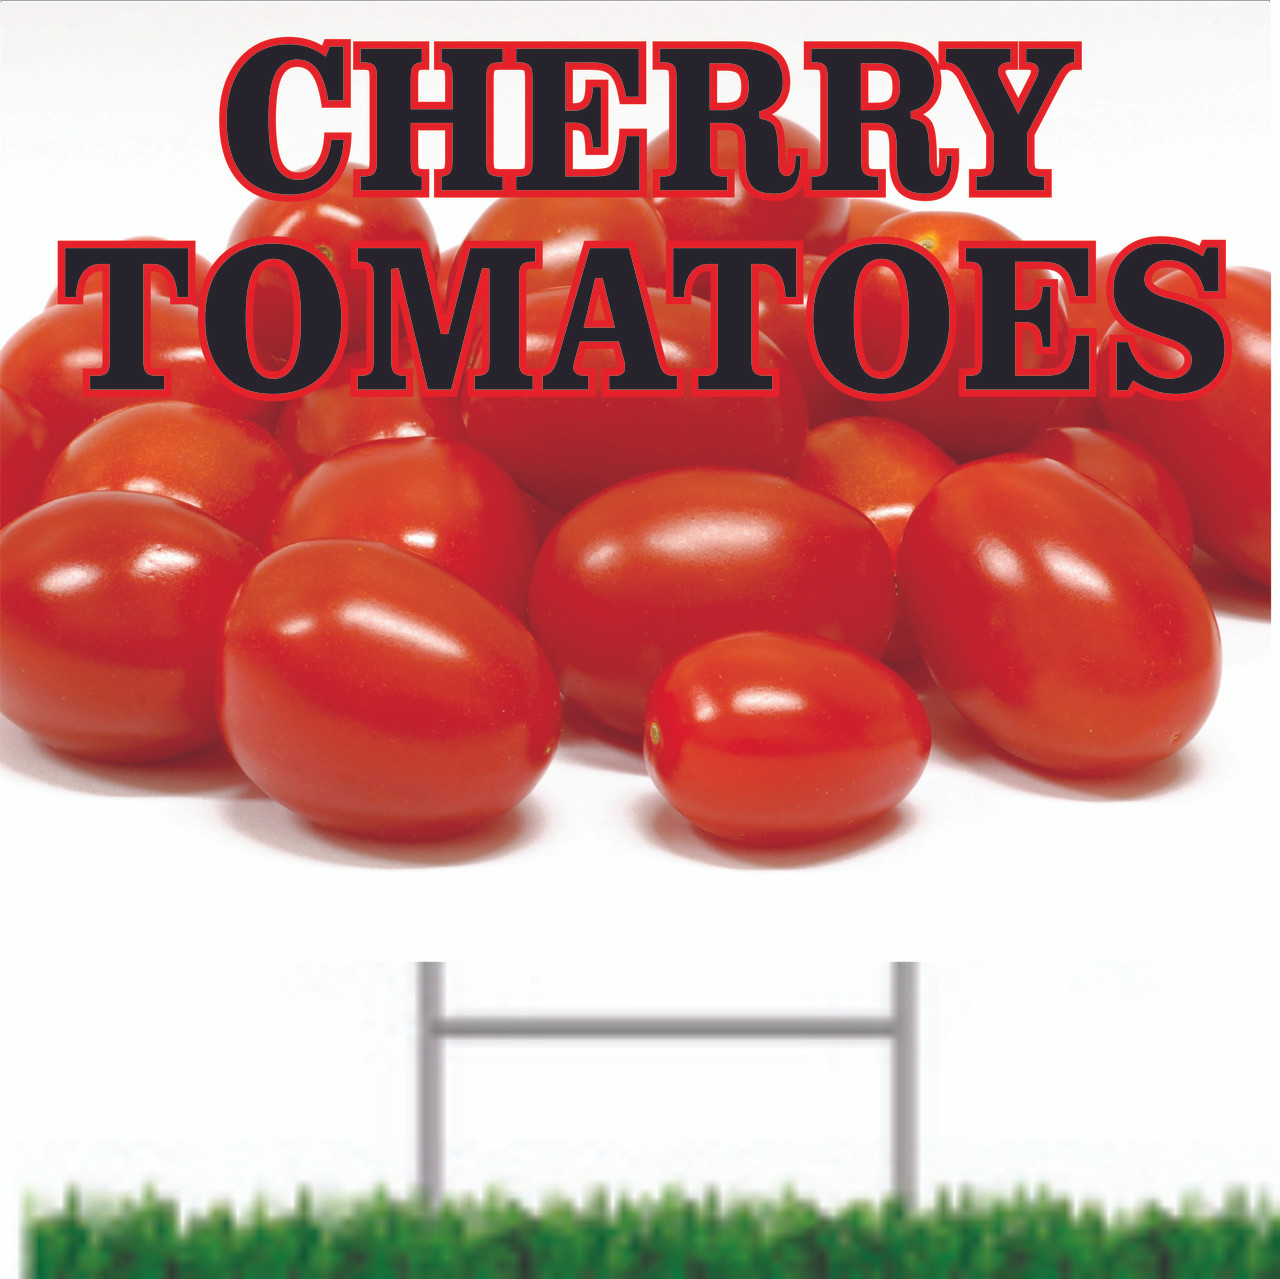 Cherry Tomatoes Road Sign Brings in Customers.